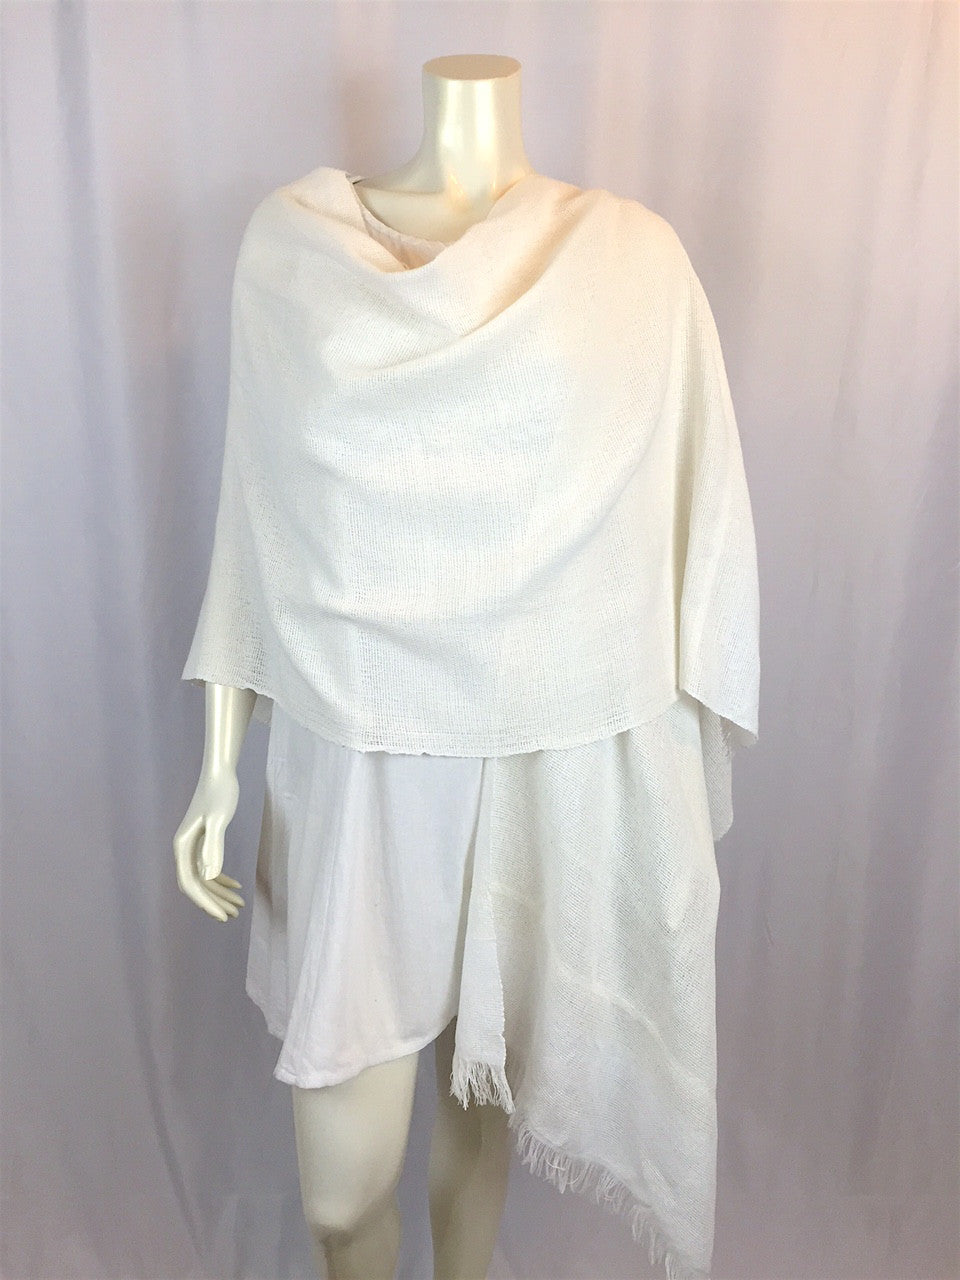 Catalina -white / cream wrap